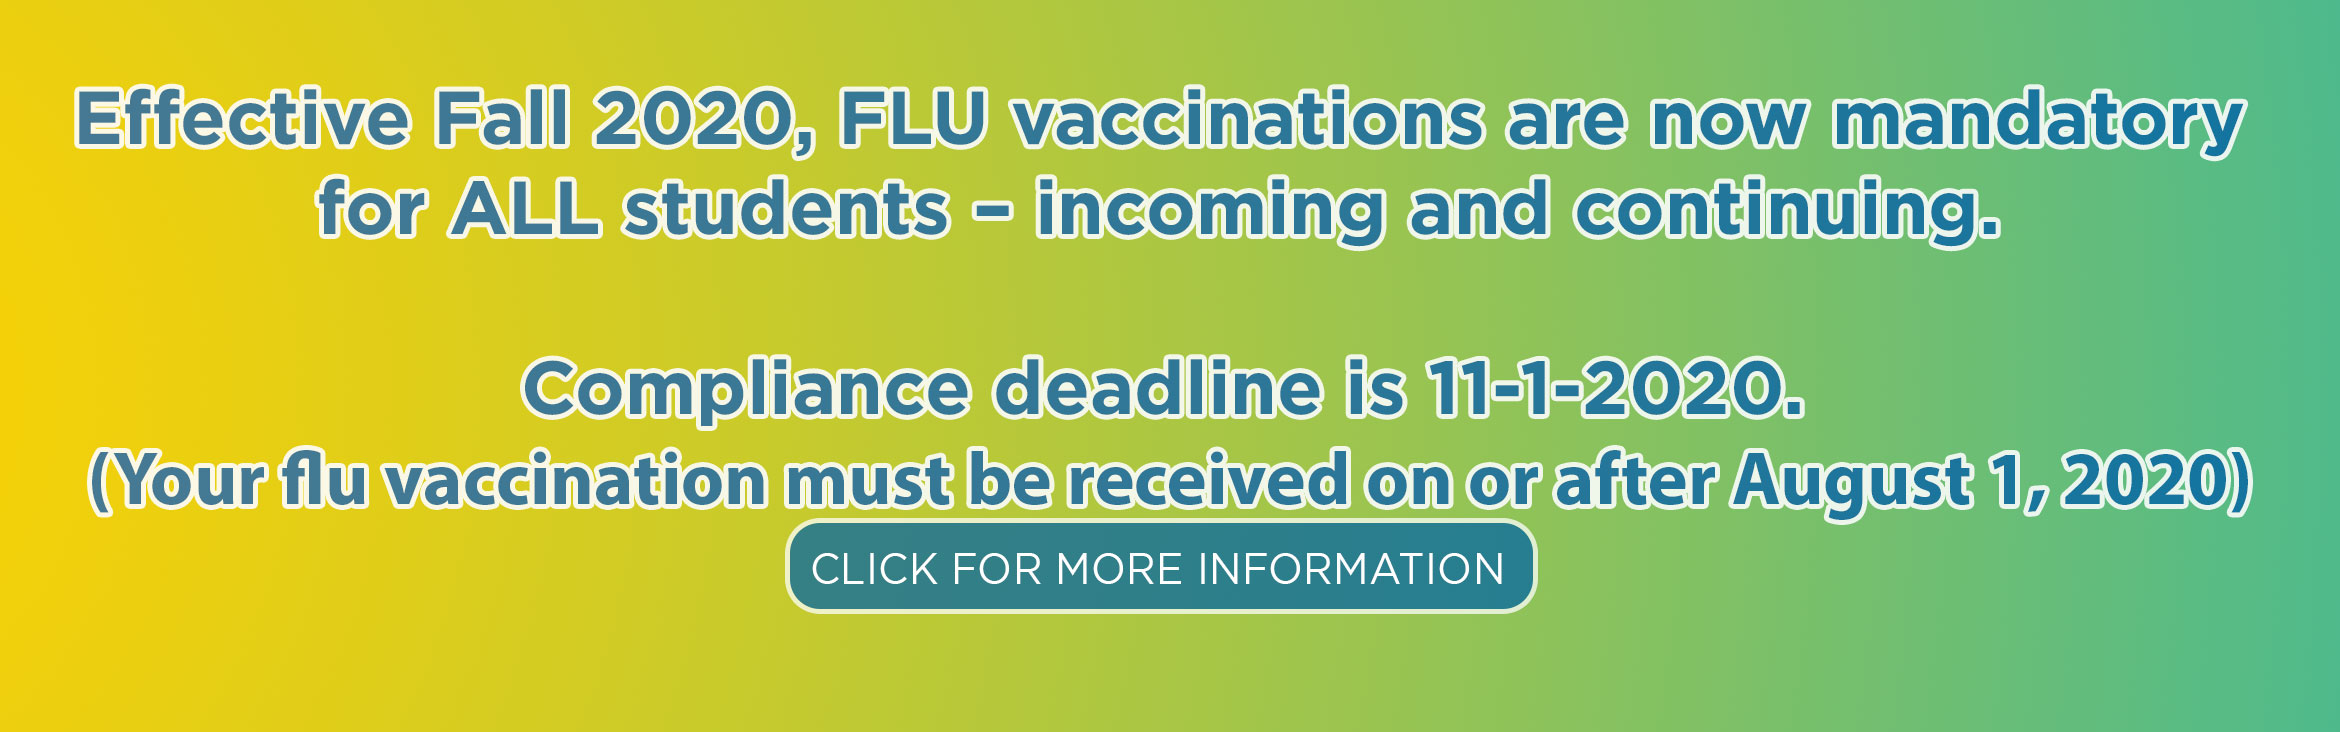 Effective Fall 2020, FLU vaccinations are now mandatory  for ALL students – incoming and continuing.   Compliance deadline is 11-1-2020.  (Your flu vaccination must be received on or after August 1, 2020)